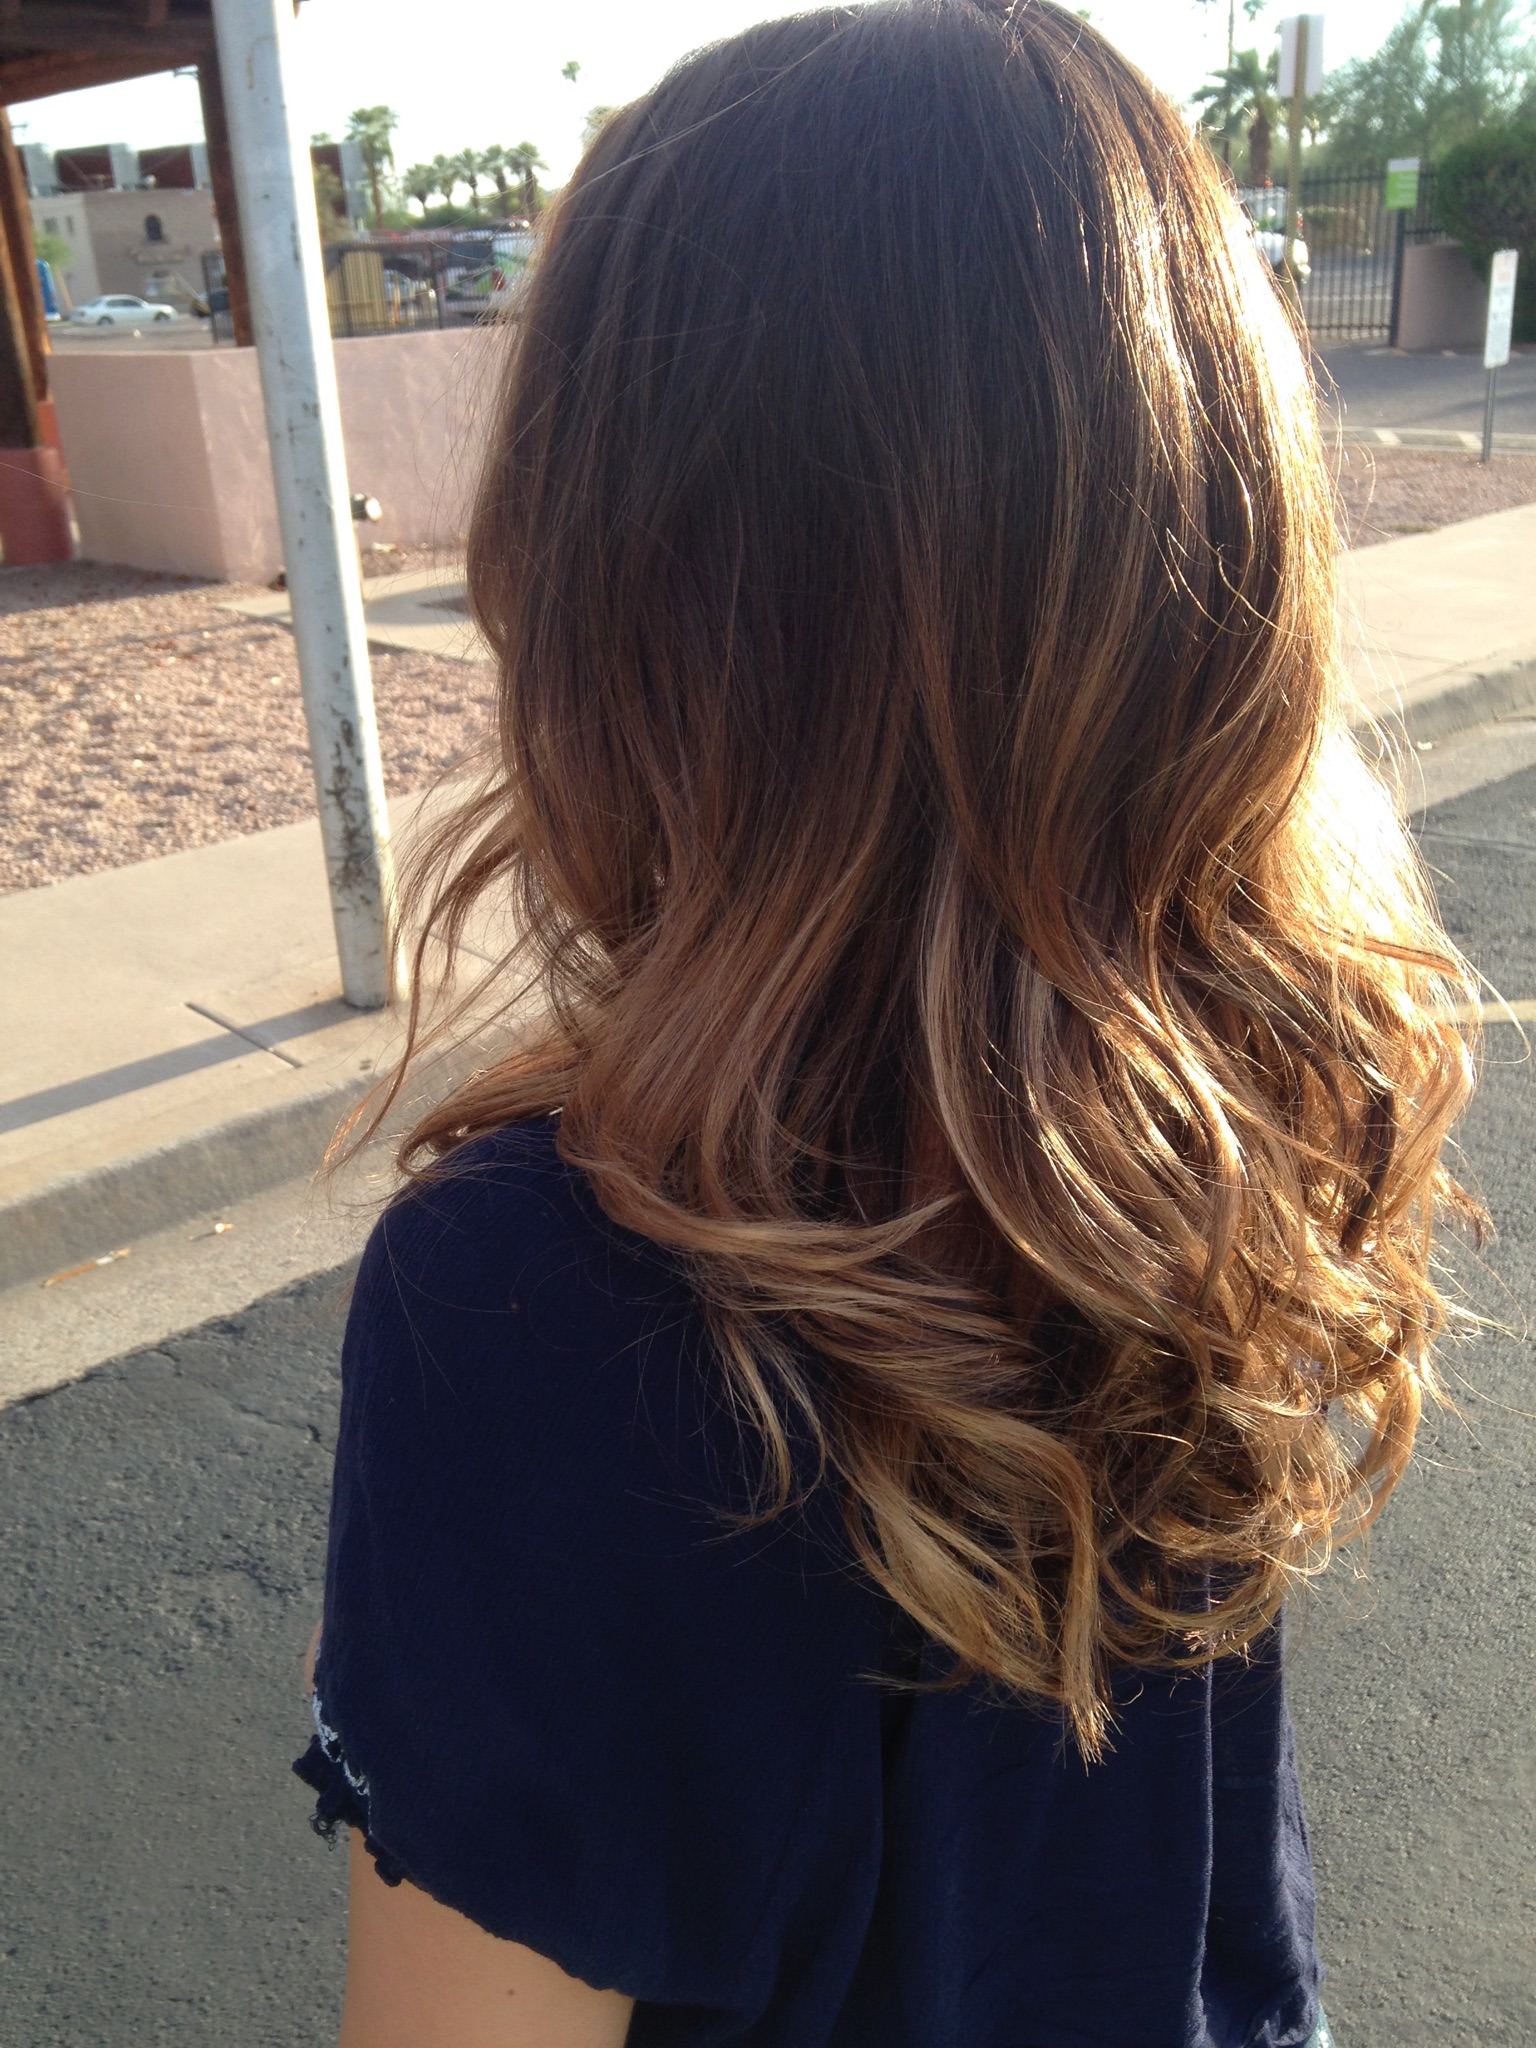 Gallery deana phelps hair designs natural dark brown color ombre and haircut urmus Images